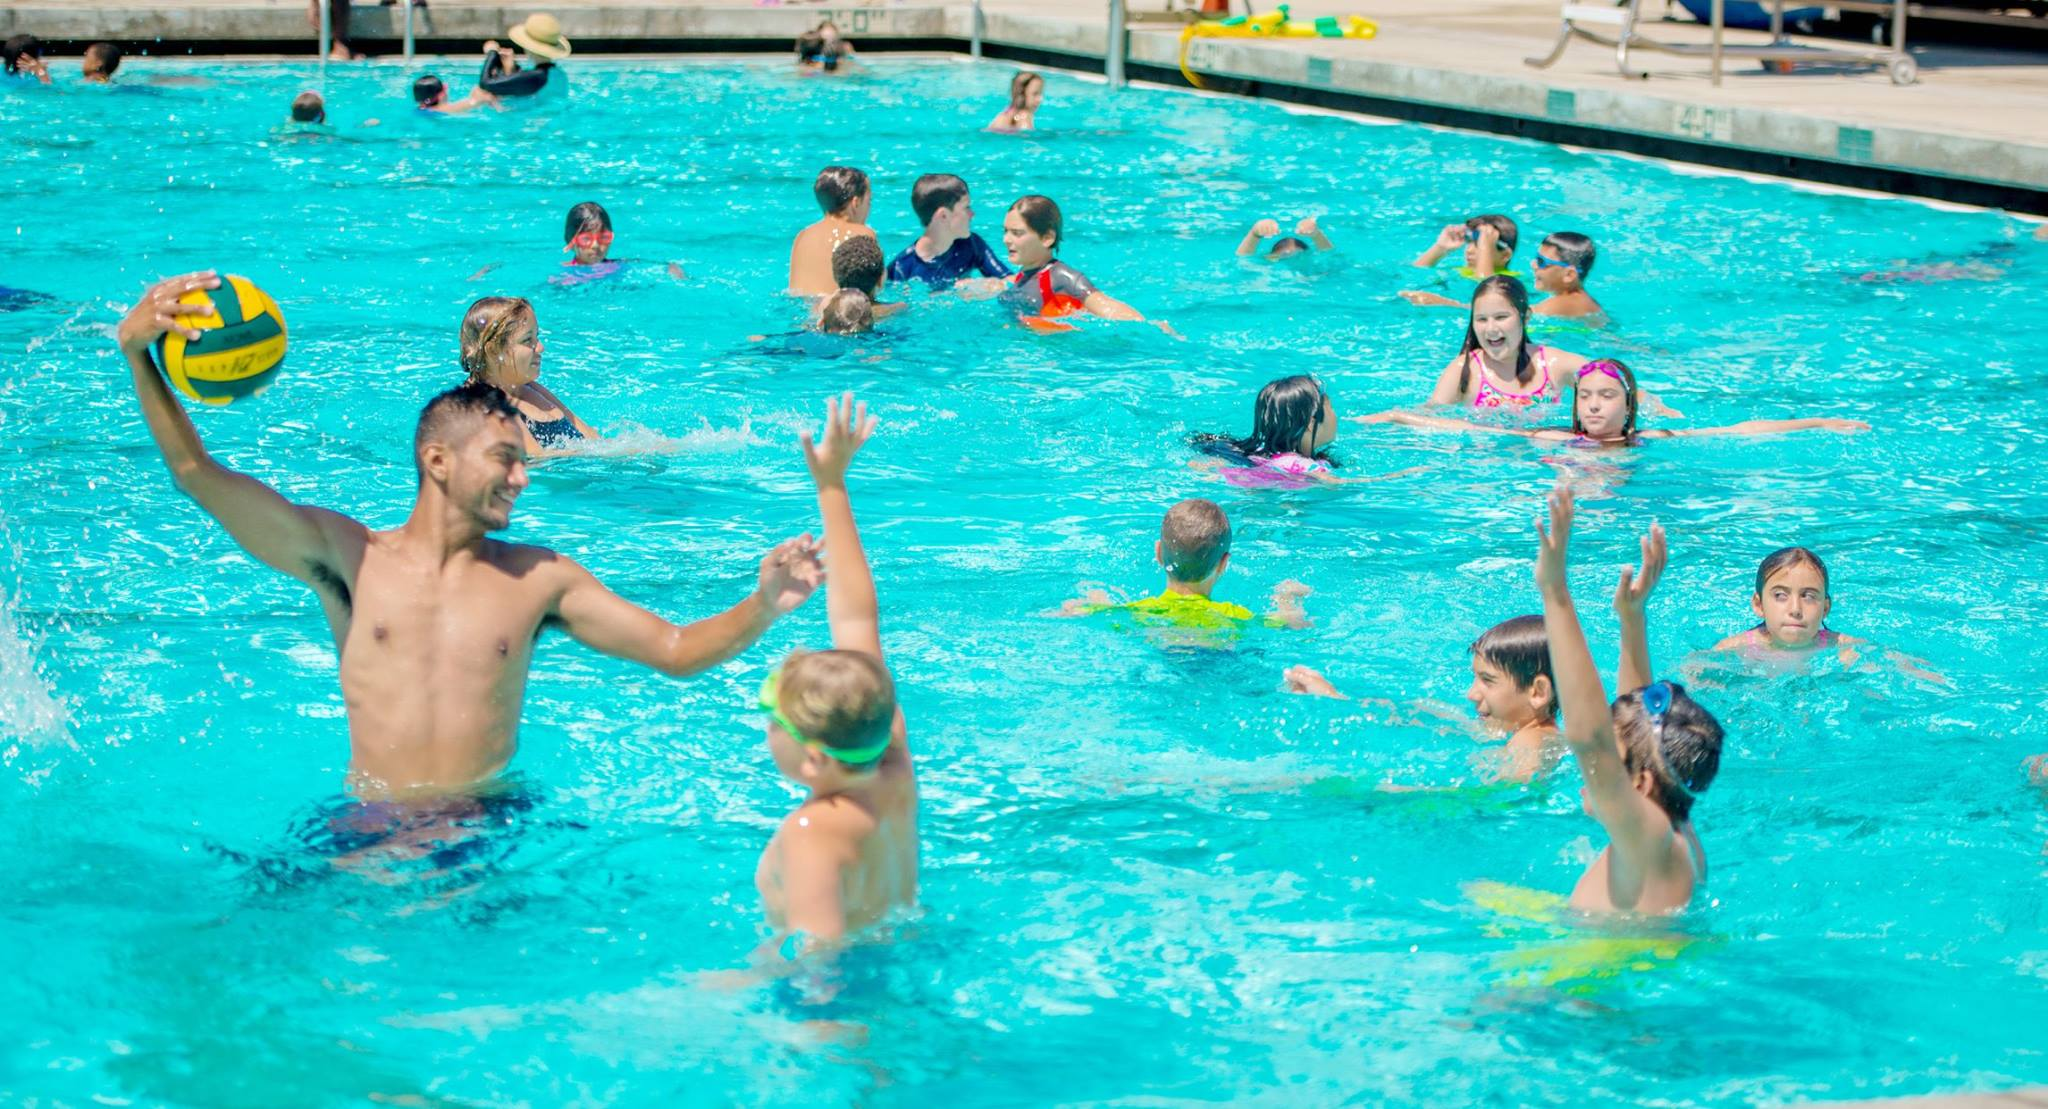 https://monarchcamps.com/wp-content/uploads/2018/01/summer-camp-in-los-angeles-swimming-pool-at-los-angeles-valley-college-children-playing-water-polo.jpg